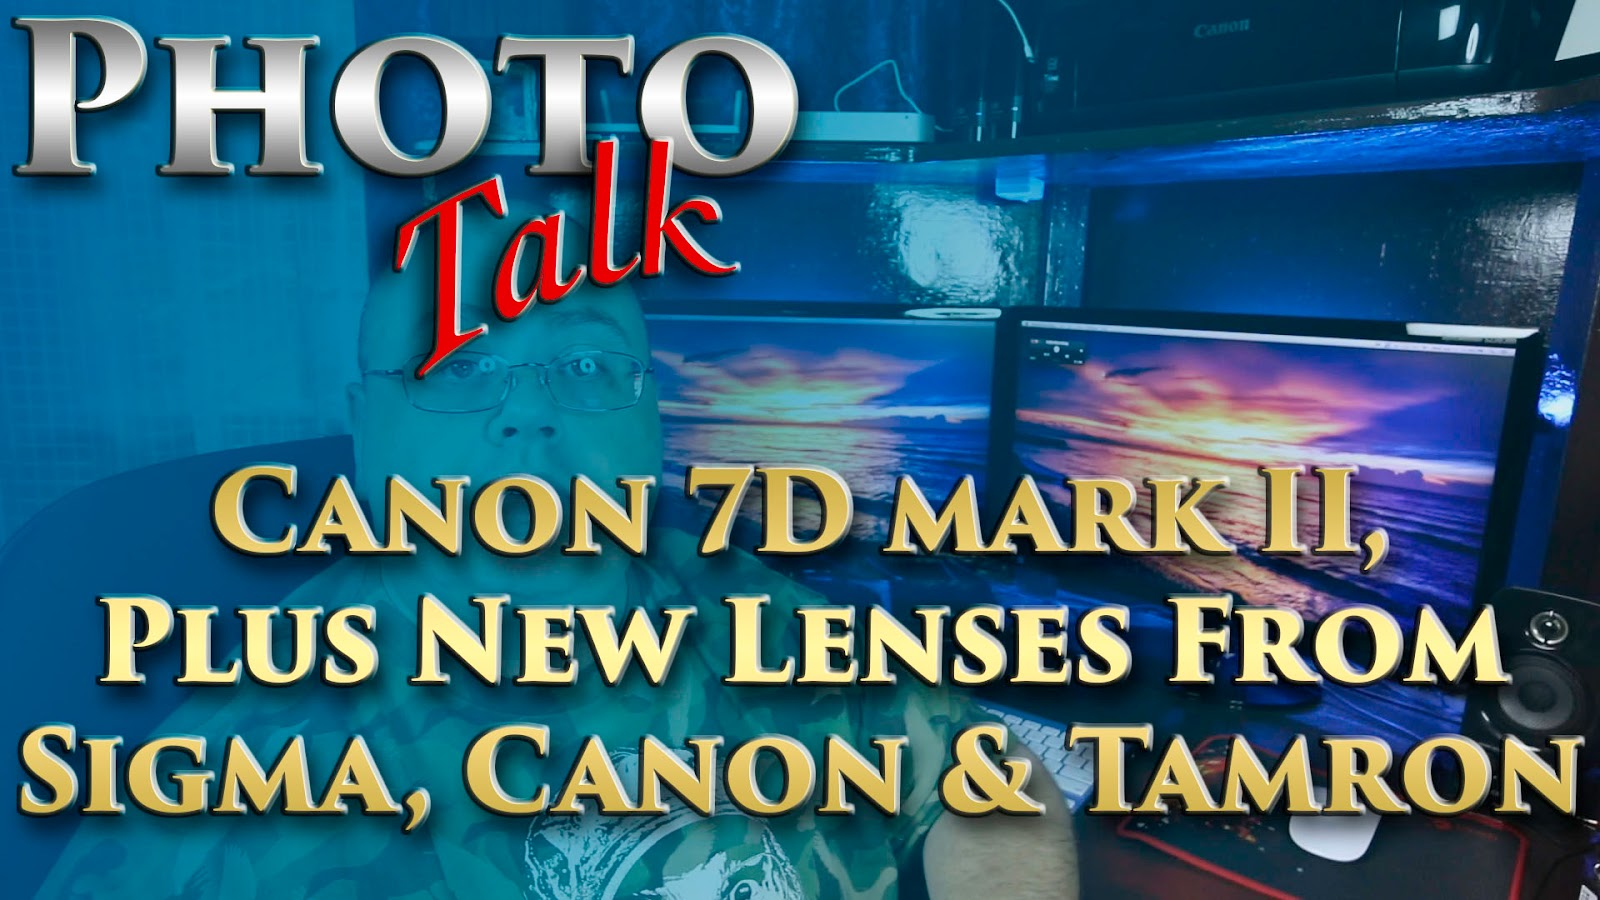 Canon 7D Mark II Finally Arrives, Plus New Lenses From Sigma, Canon & Tamron